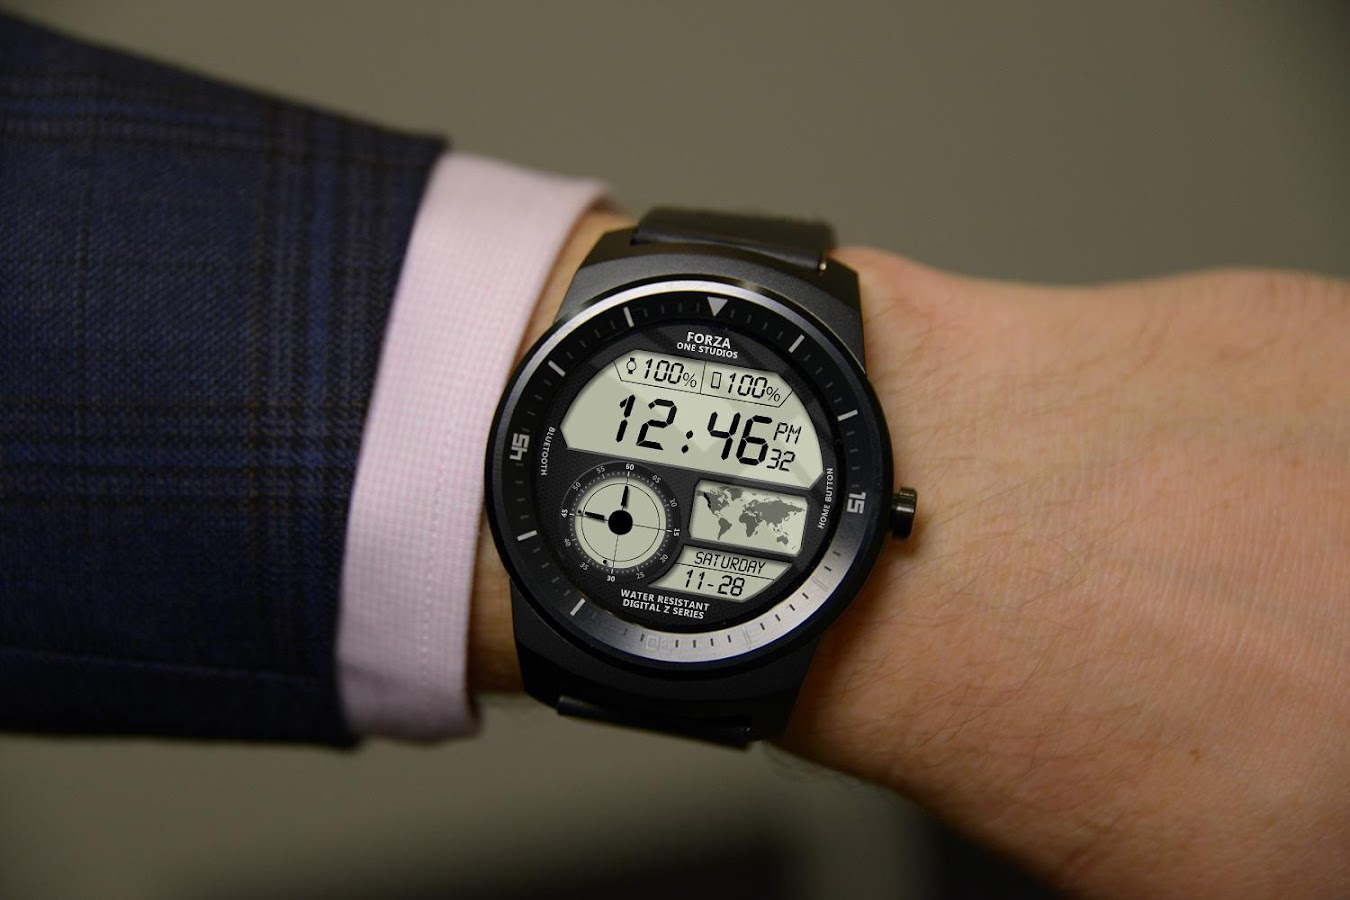 Facer android wear - Watch Face Z04 Android Wear Screenshot